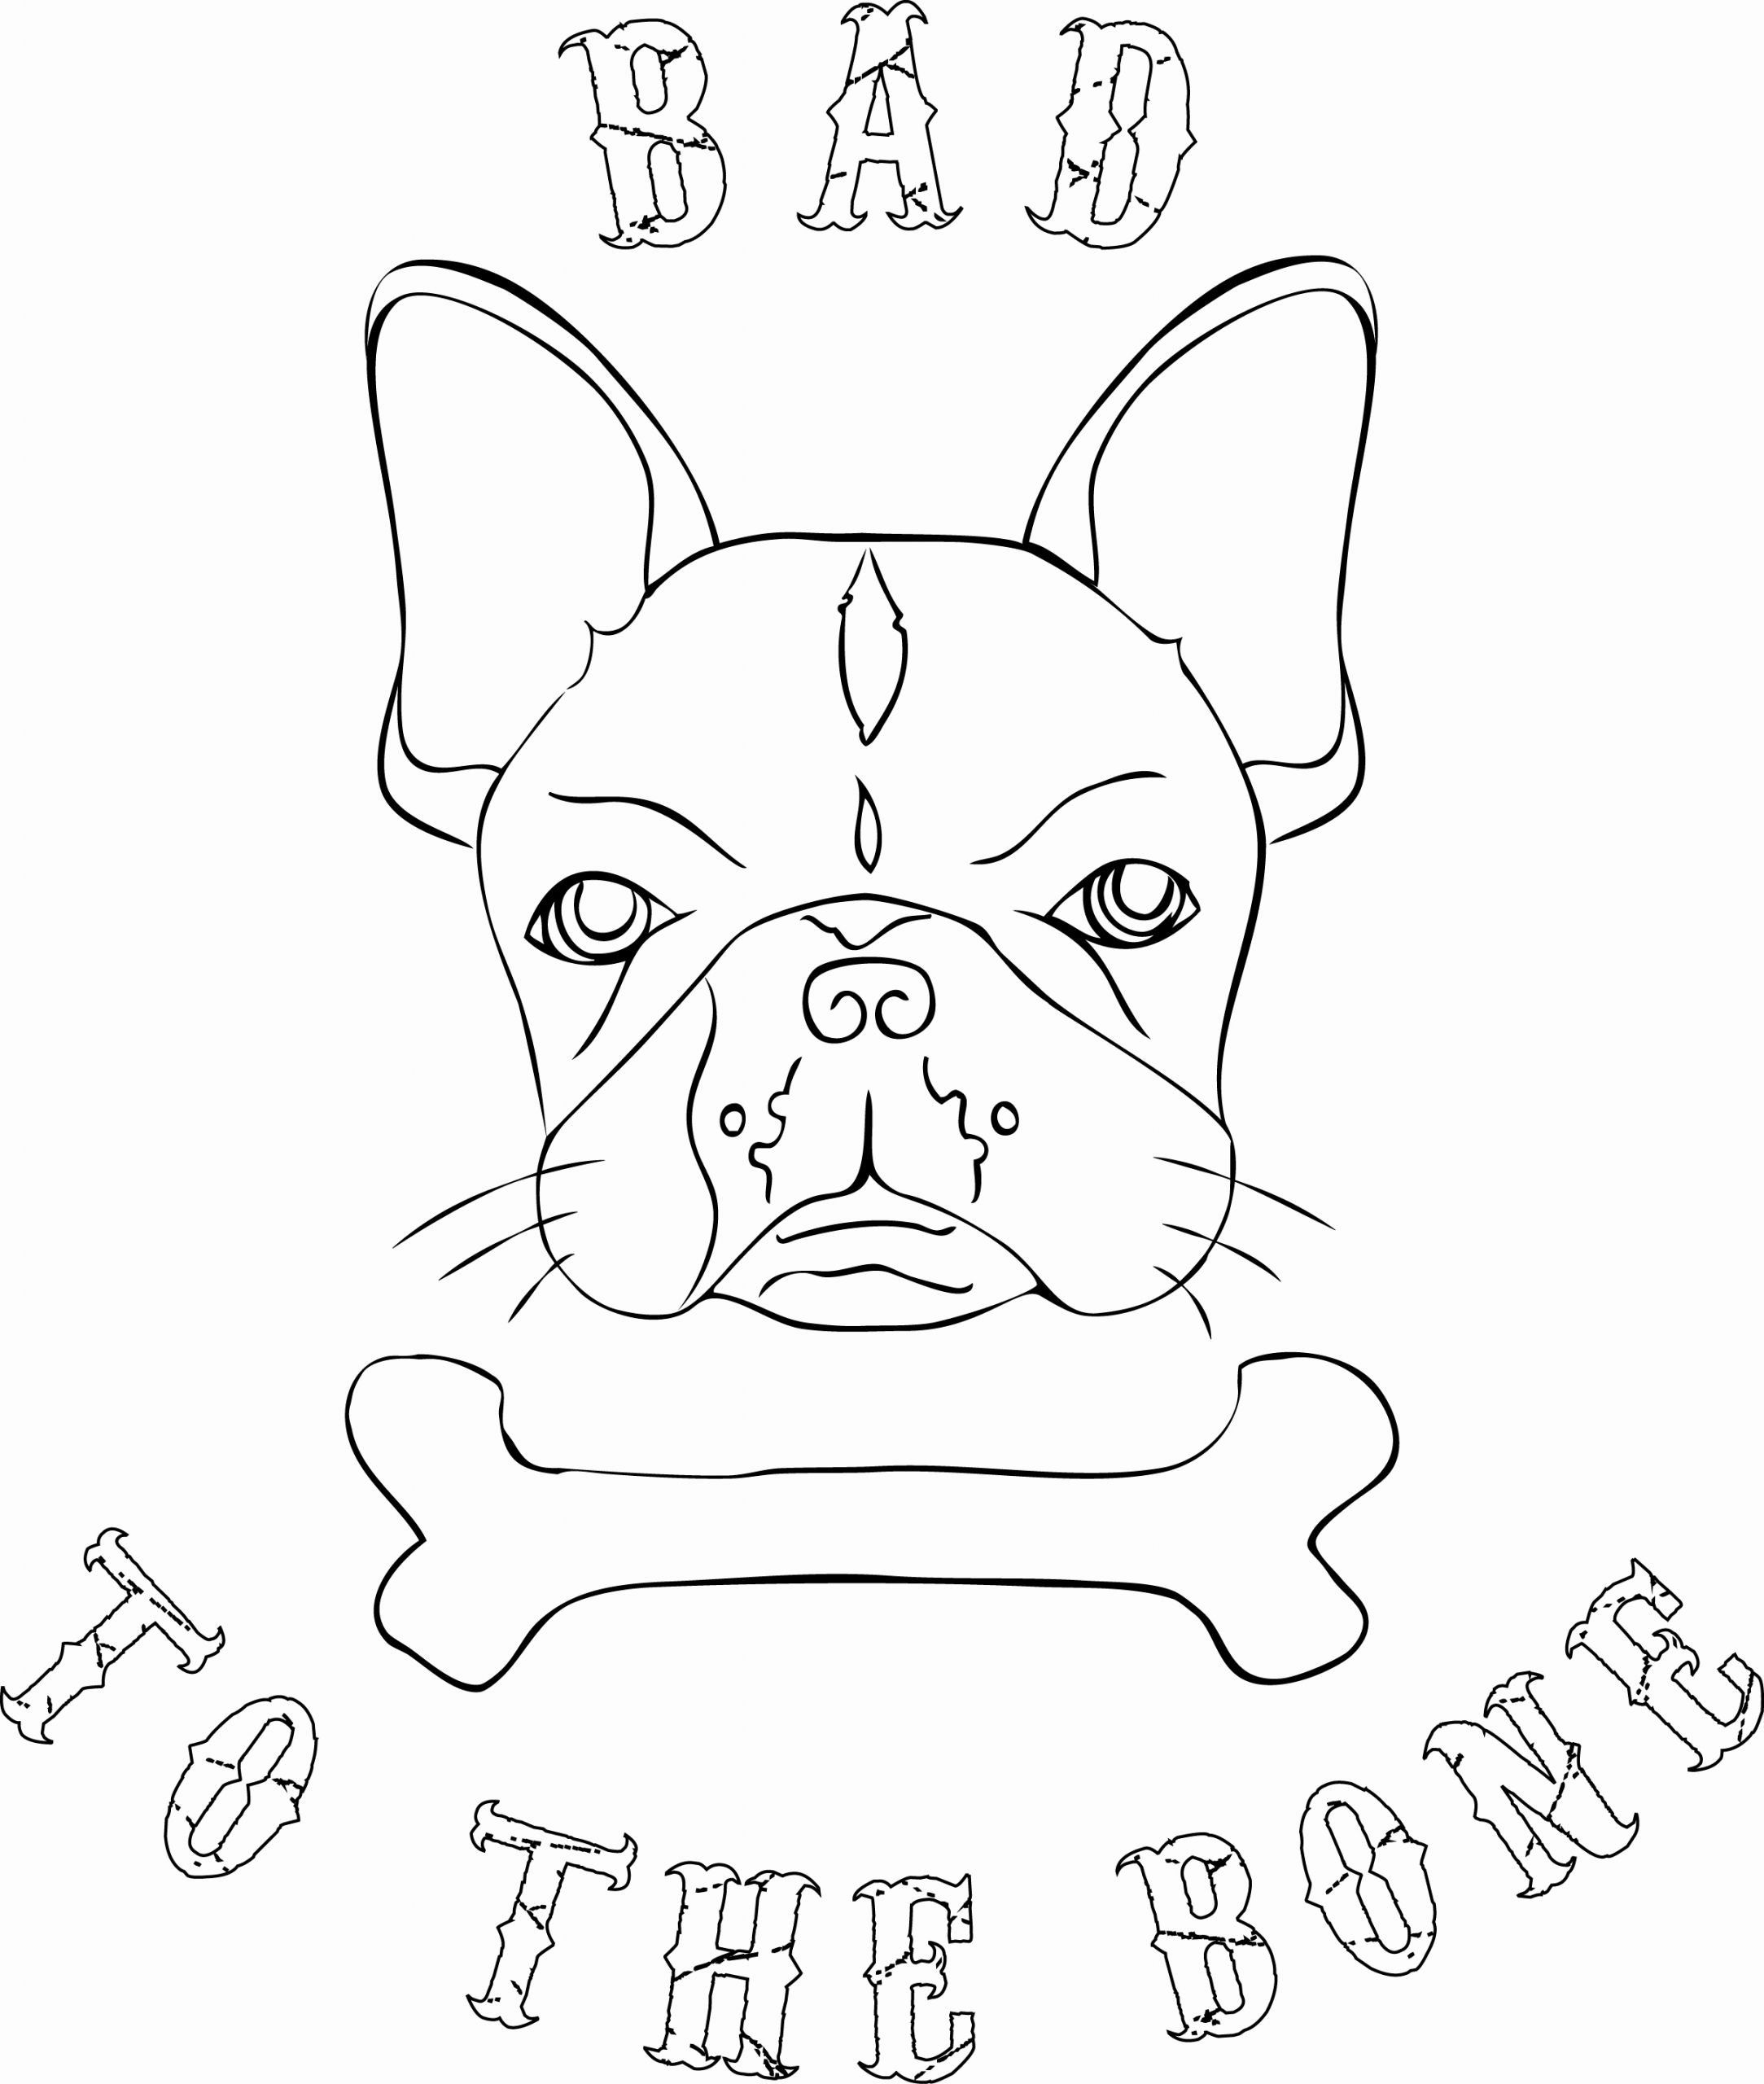 Bull Dog Coloring Page Awesome French Bulldog Rescue Network Jv Color Corner Dog Coloring Page Puppy Coloring Pages Owl Coloring Pages